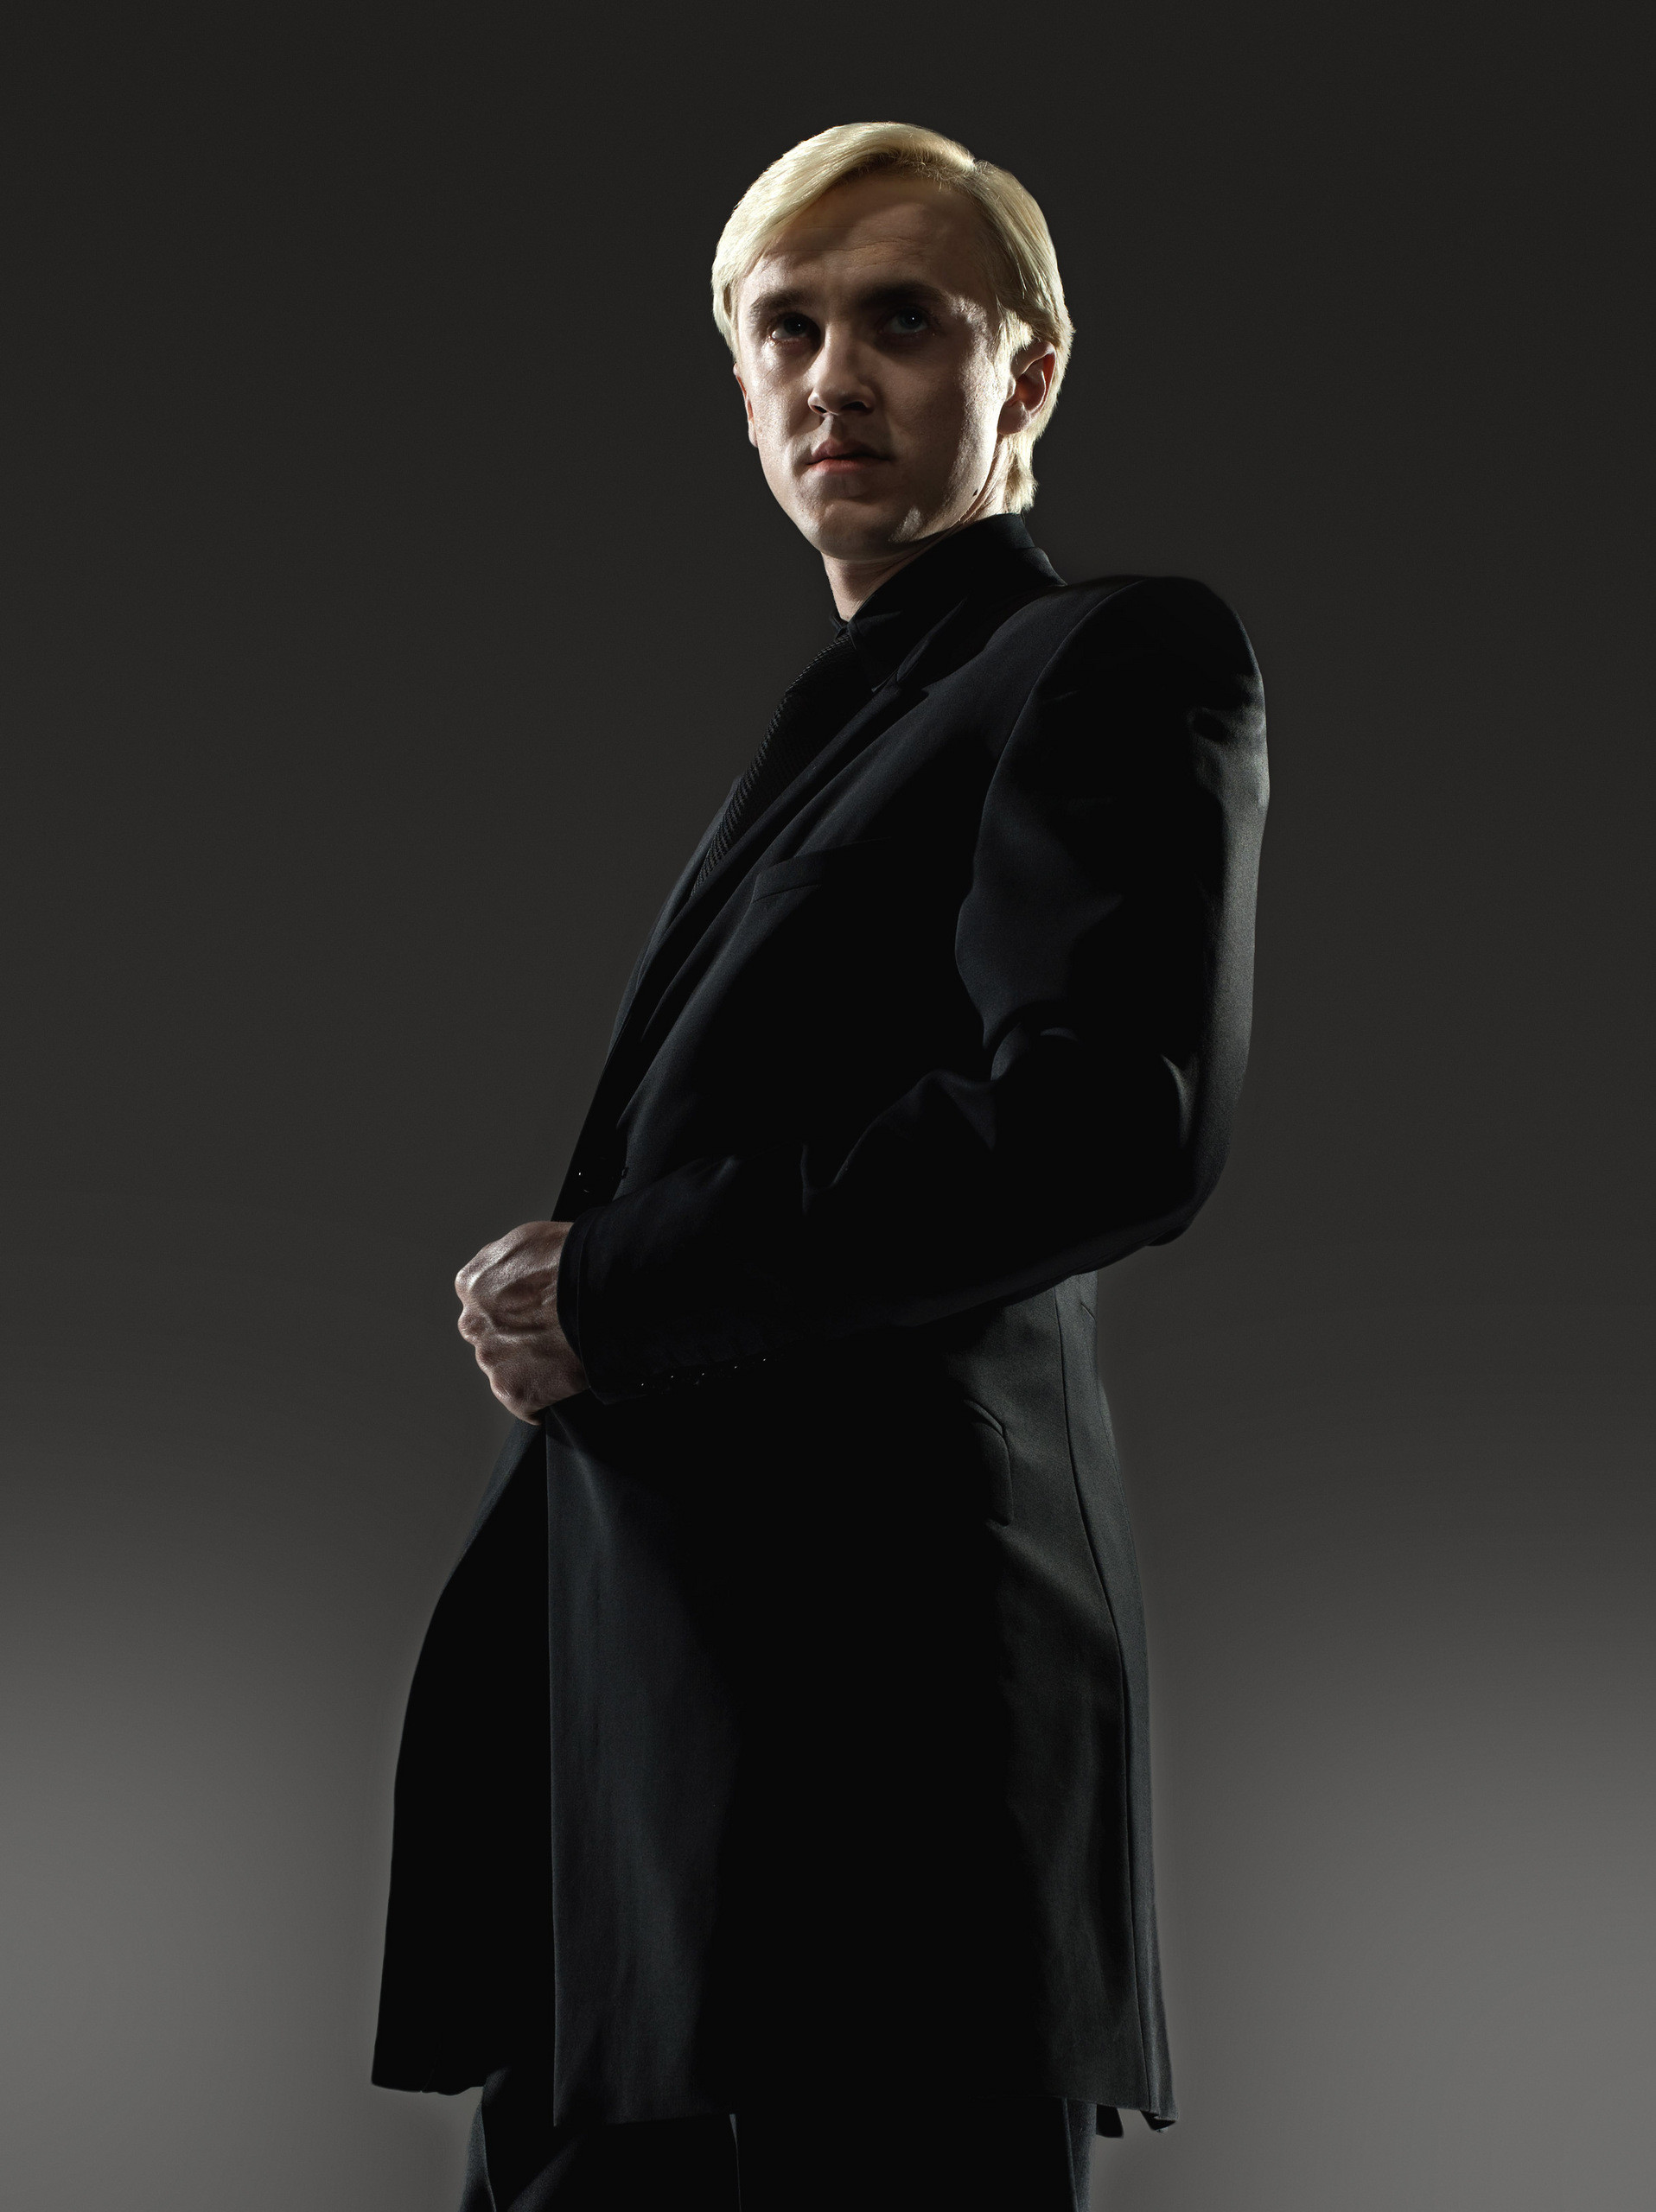 Tom Felton Wallpapers 69 Images